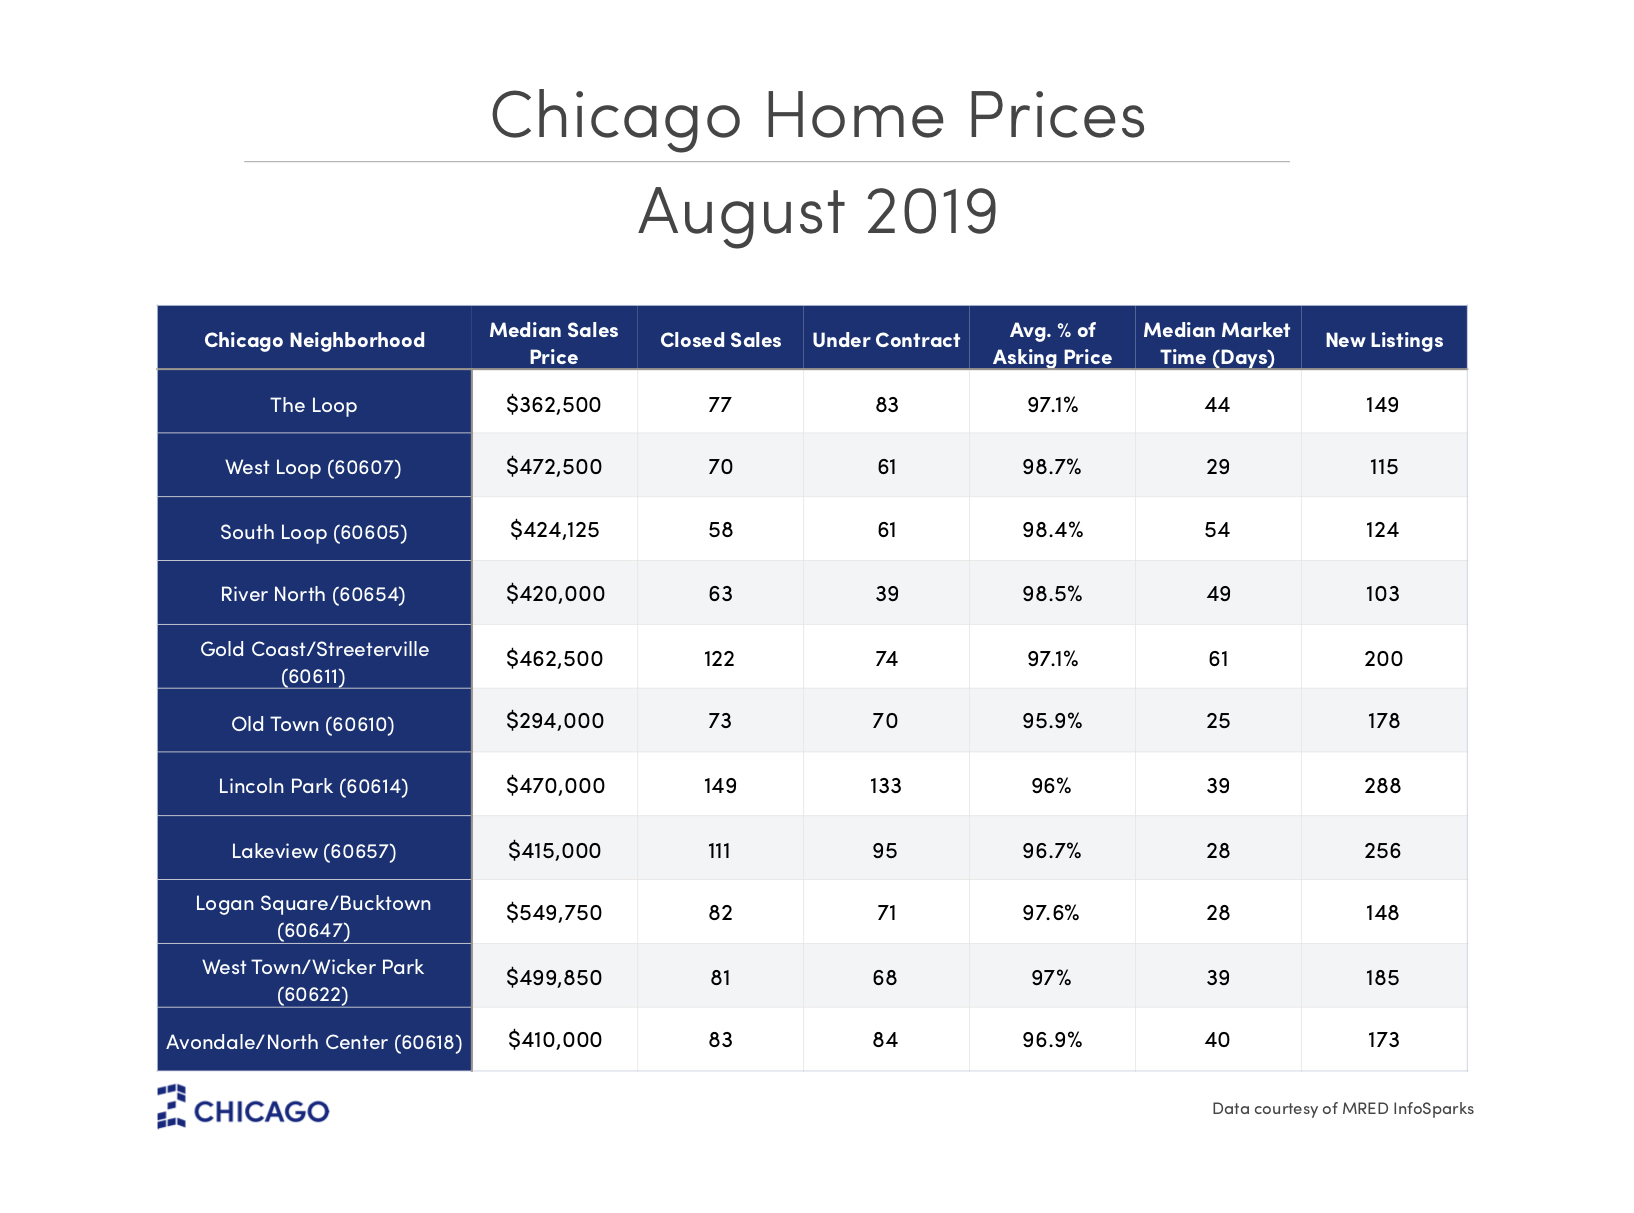 Chicago Home Prices - September 2019